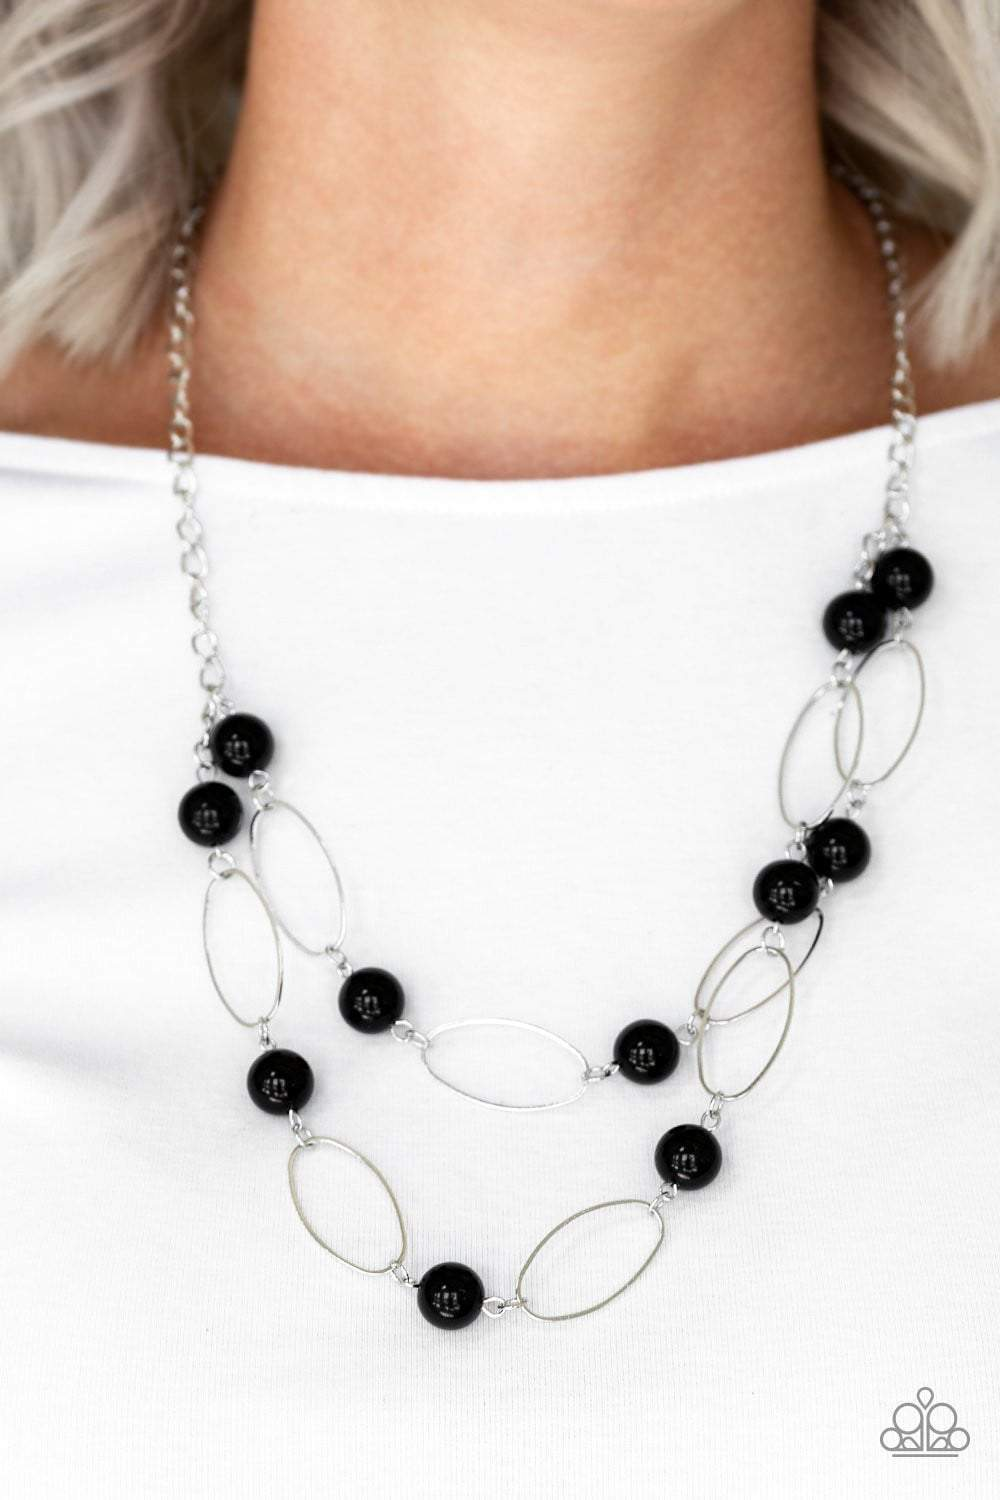 Paparazzi Best Of Both POSH-ible Worlds - Black - Bling It On Online